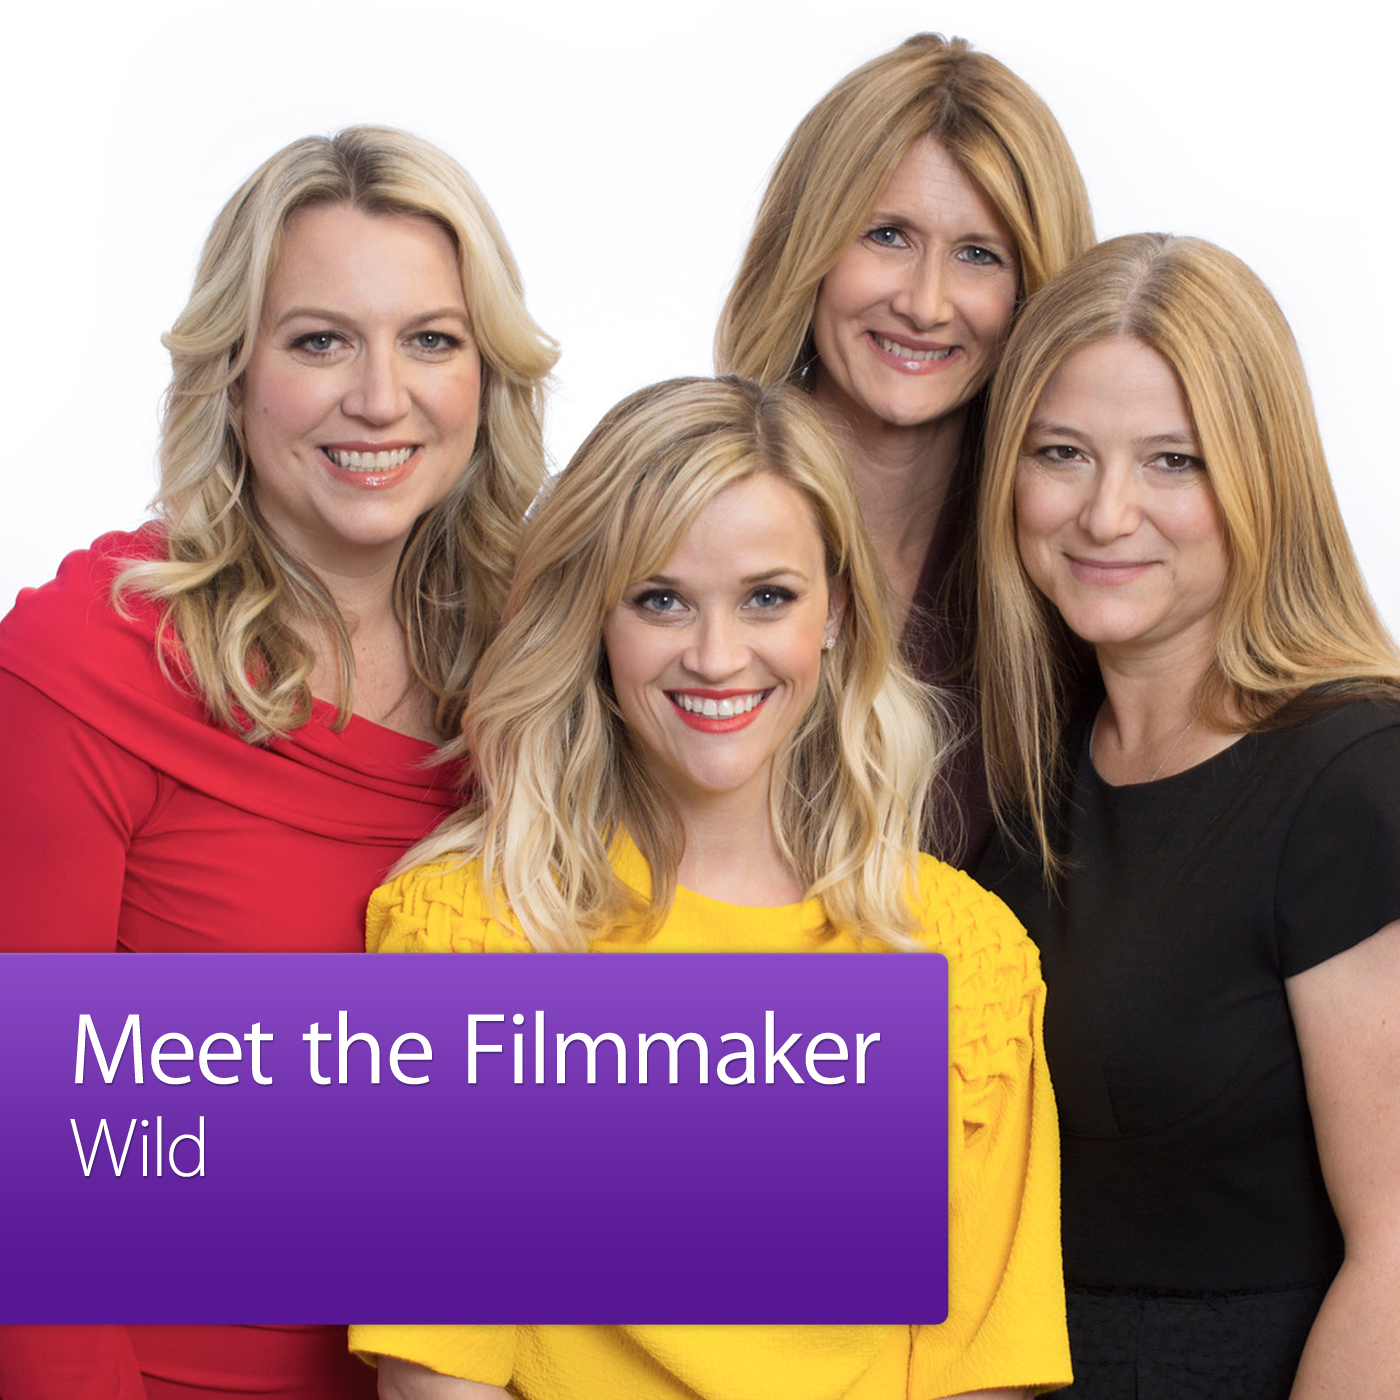 Reese Witherspoon, Laura Dern, Cheryl Strayed, and Bruna Papandrea: Meet the Filmmaker